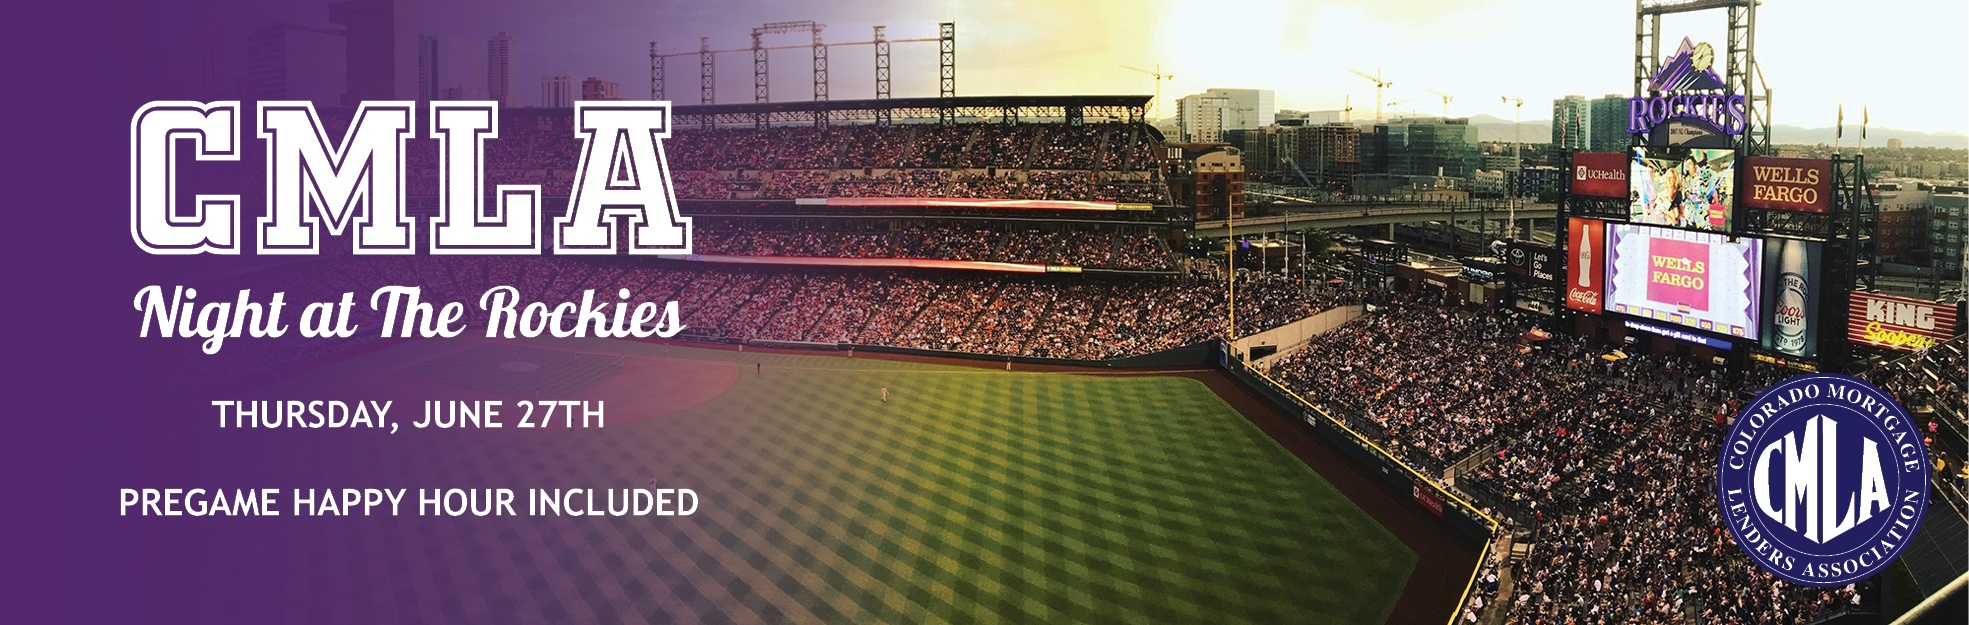 Rockies Game and Networking